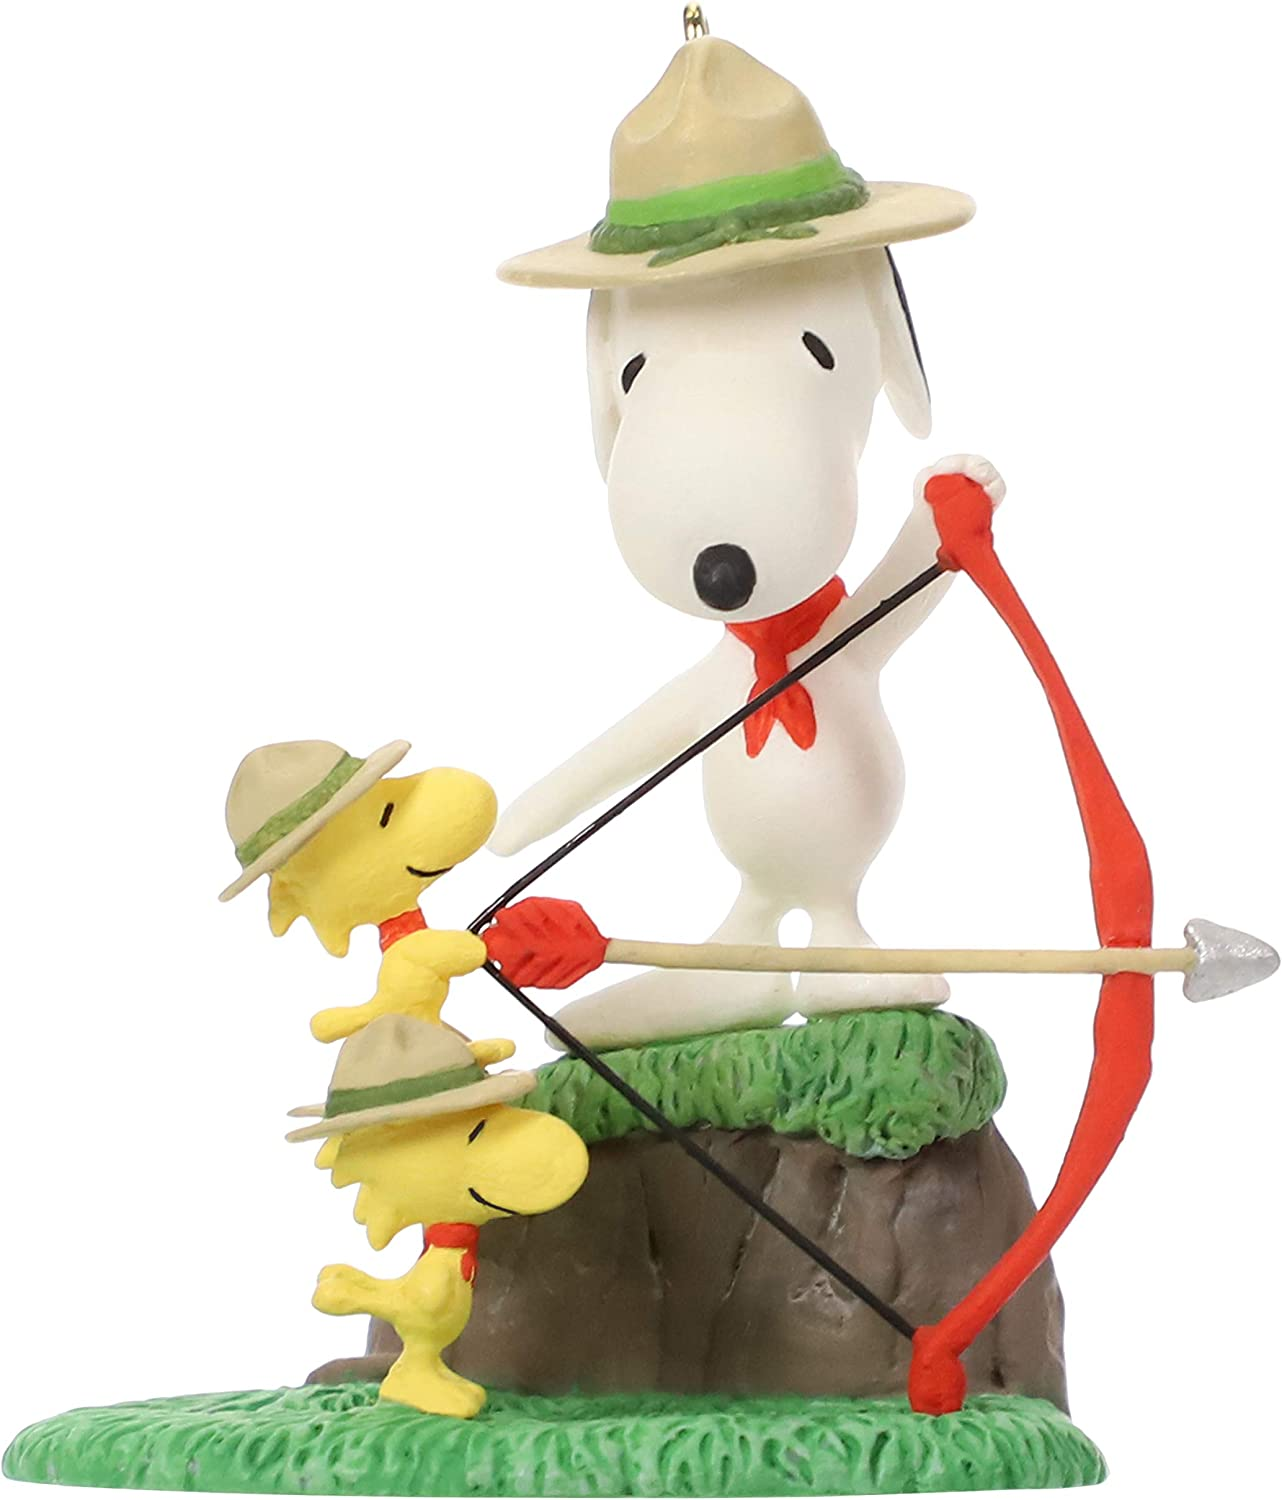 Hallmark Keepsake Christmas Ornament 2019 Year Dated Peanuts Beagle Scouts Practice, Snoopy Archery